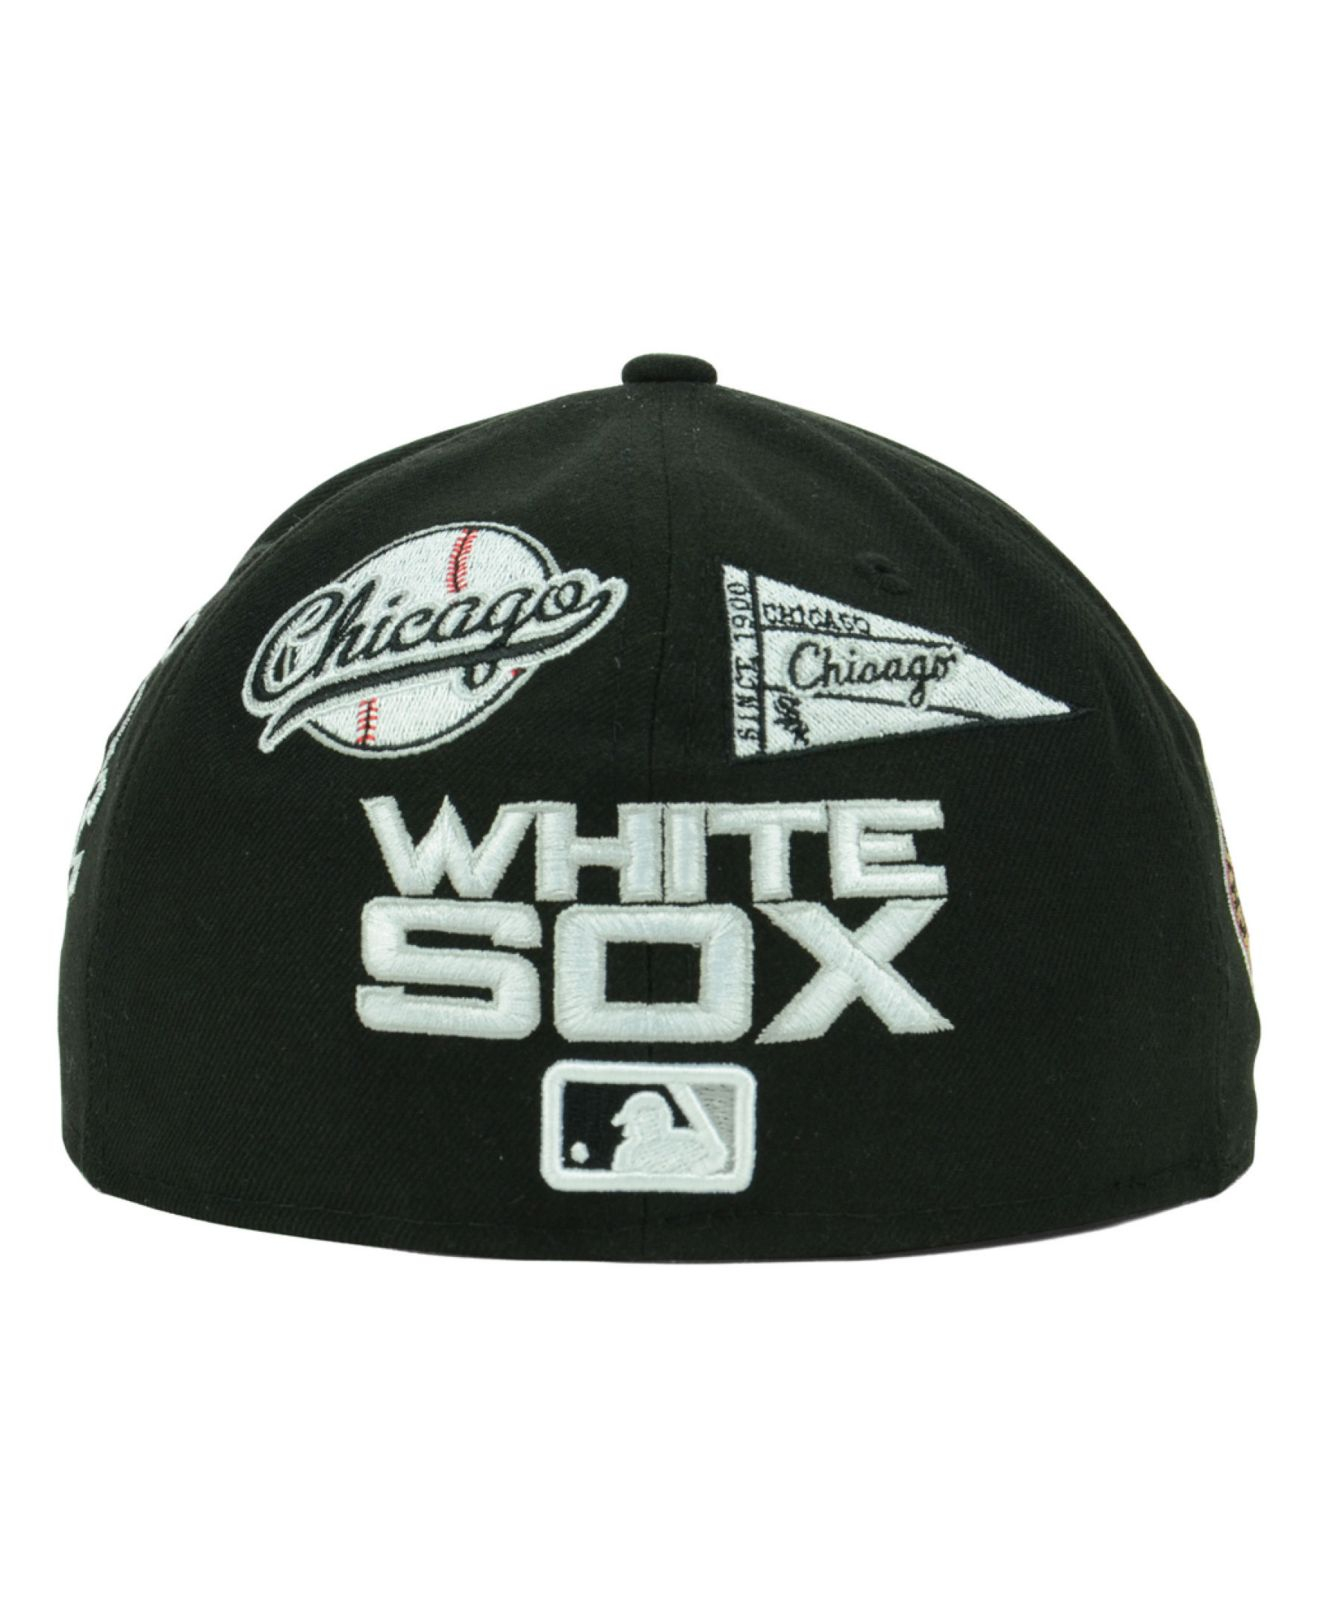 Lyst - Ktz Chicago White Sox Mlb Patch D Up 59Fifty Cap in Black for Men c00d31b7e67a